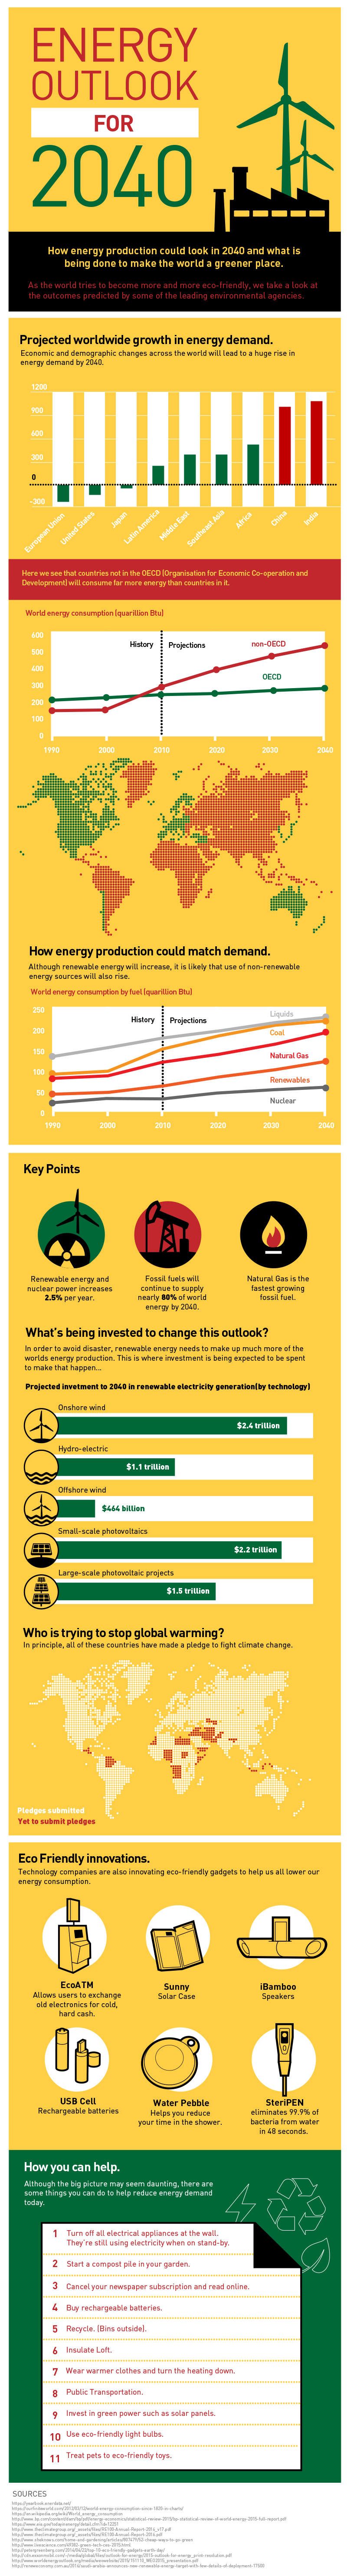 Energy Outlook for 2040